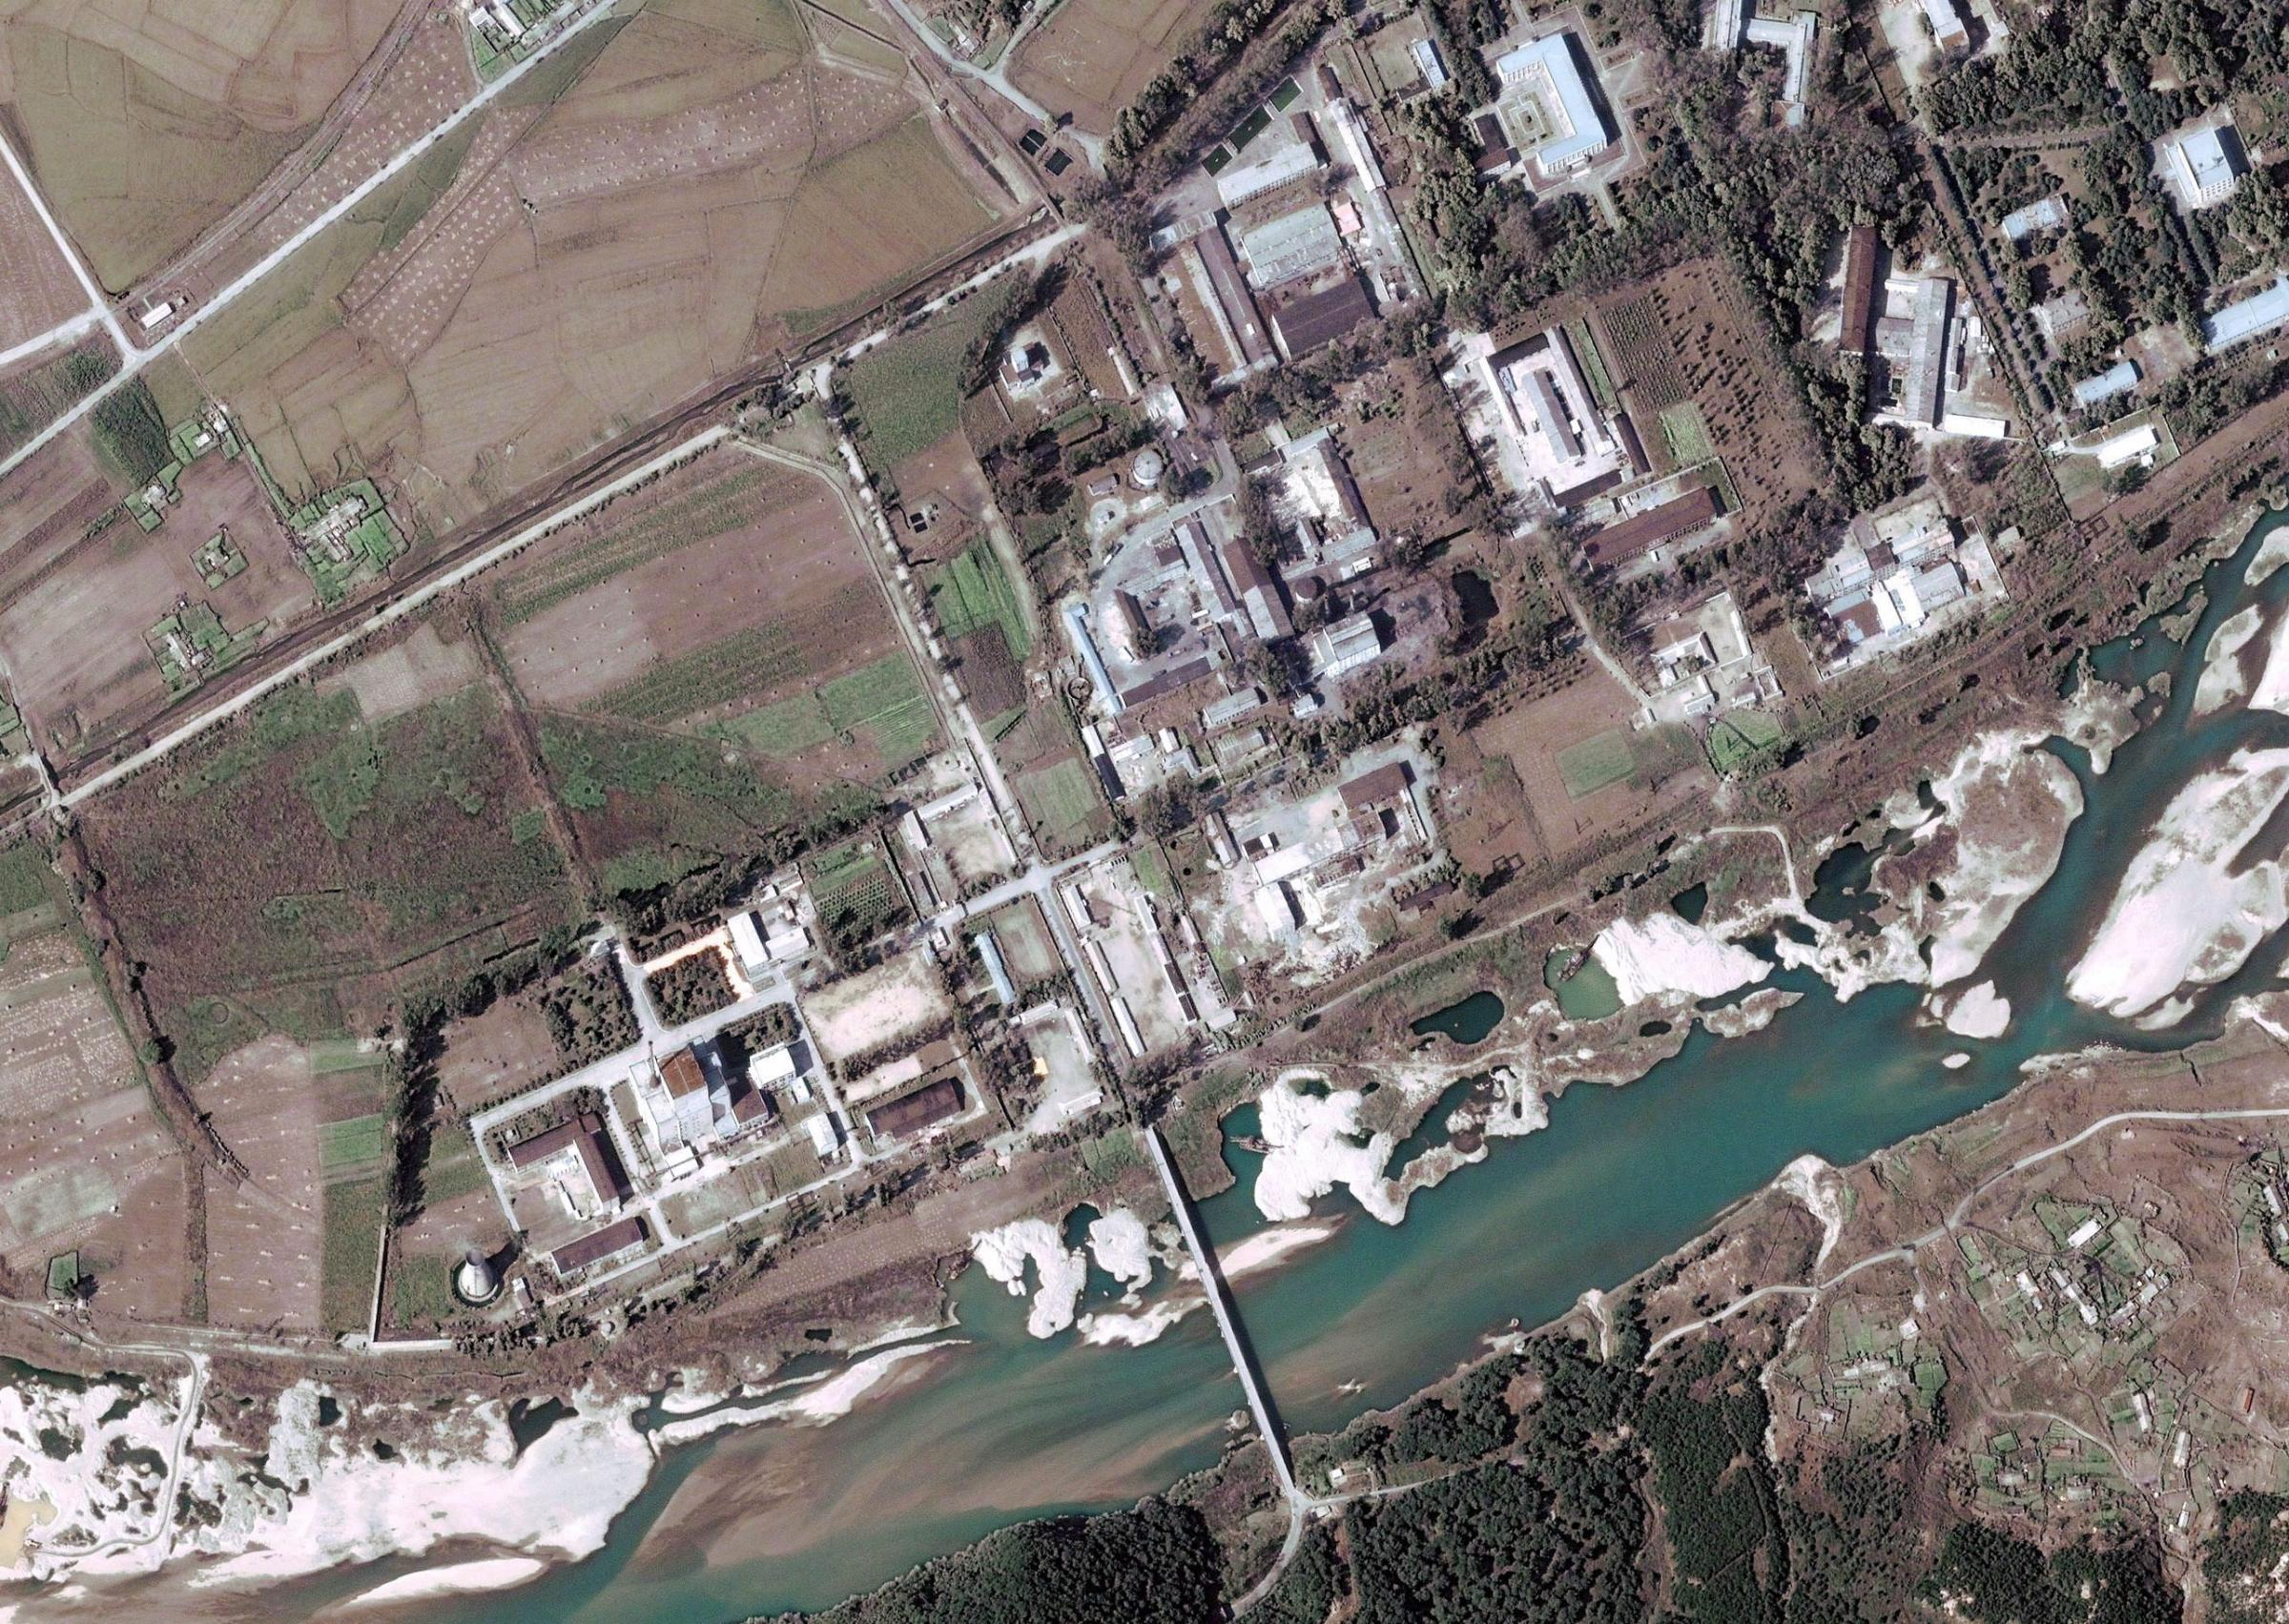 satellite view of Yongbyon Nuclear Scientific Research Center, North Korea